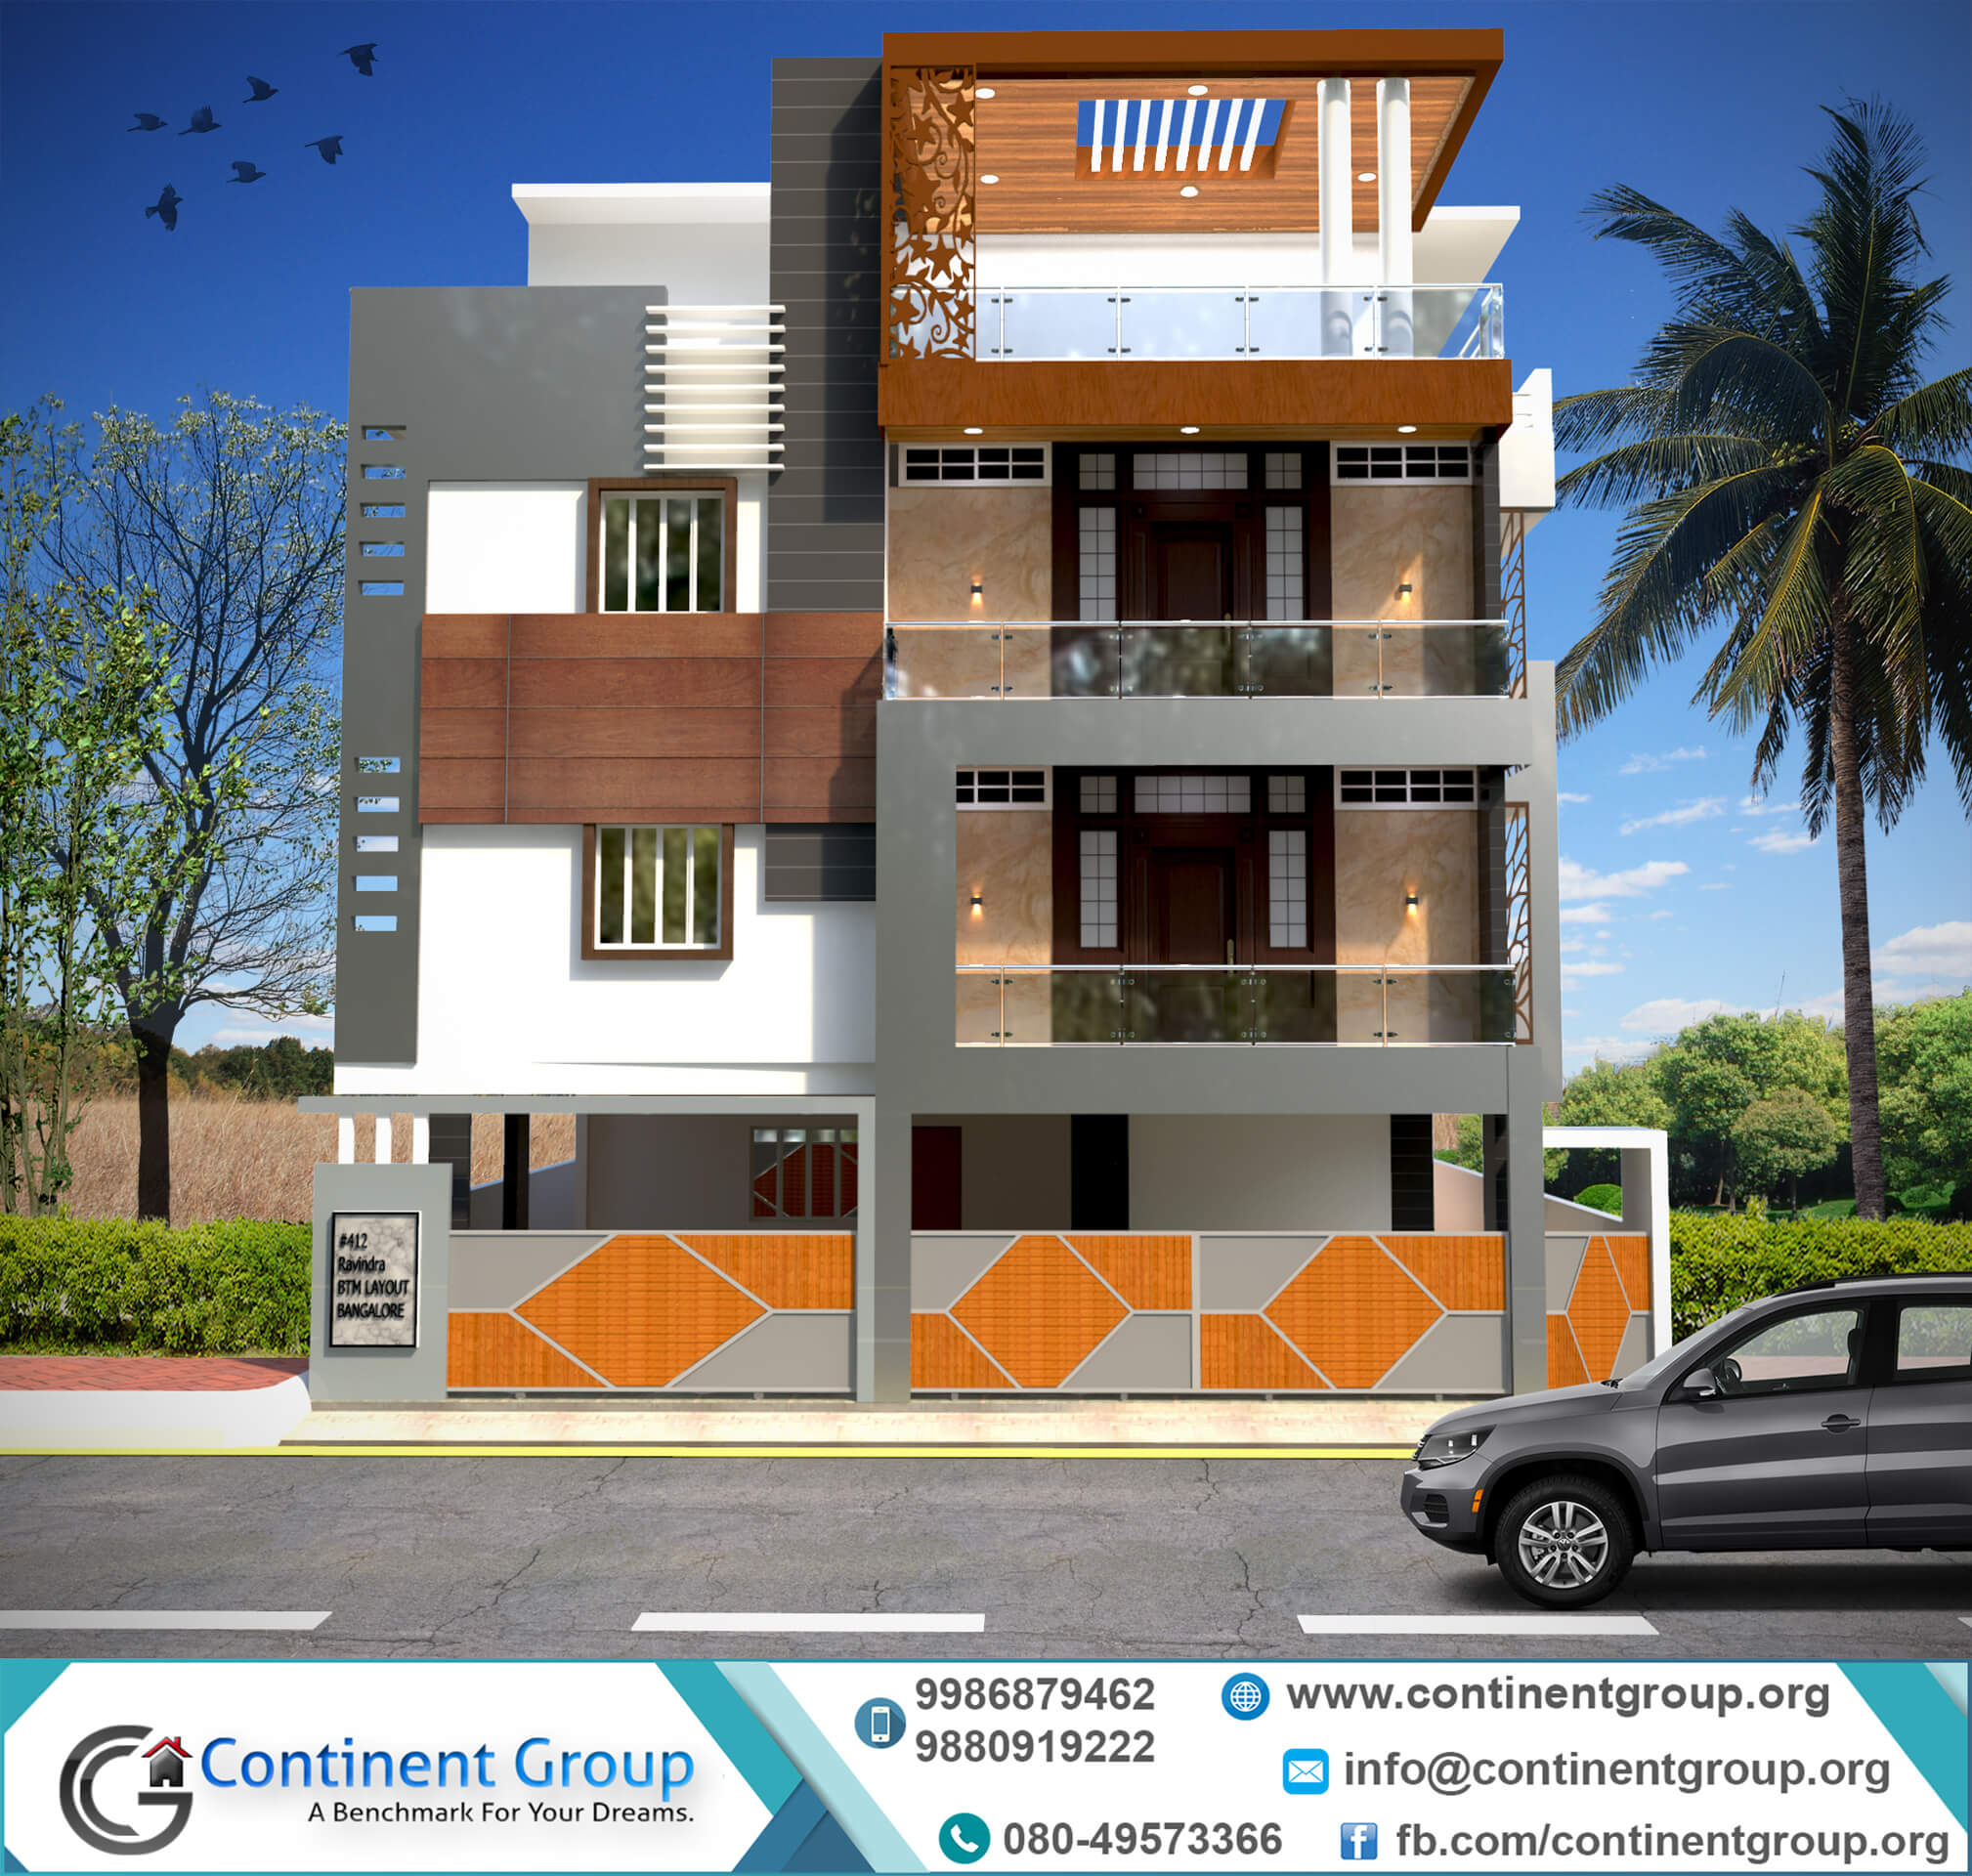 D Front Elevation Of Building : D building elevation front continent group